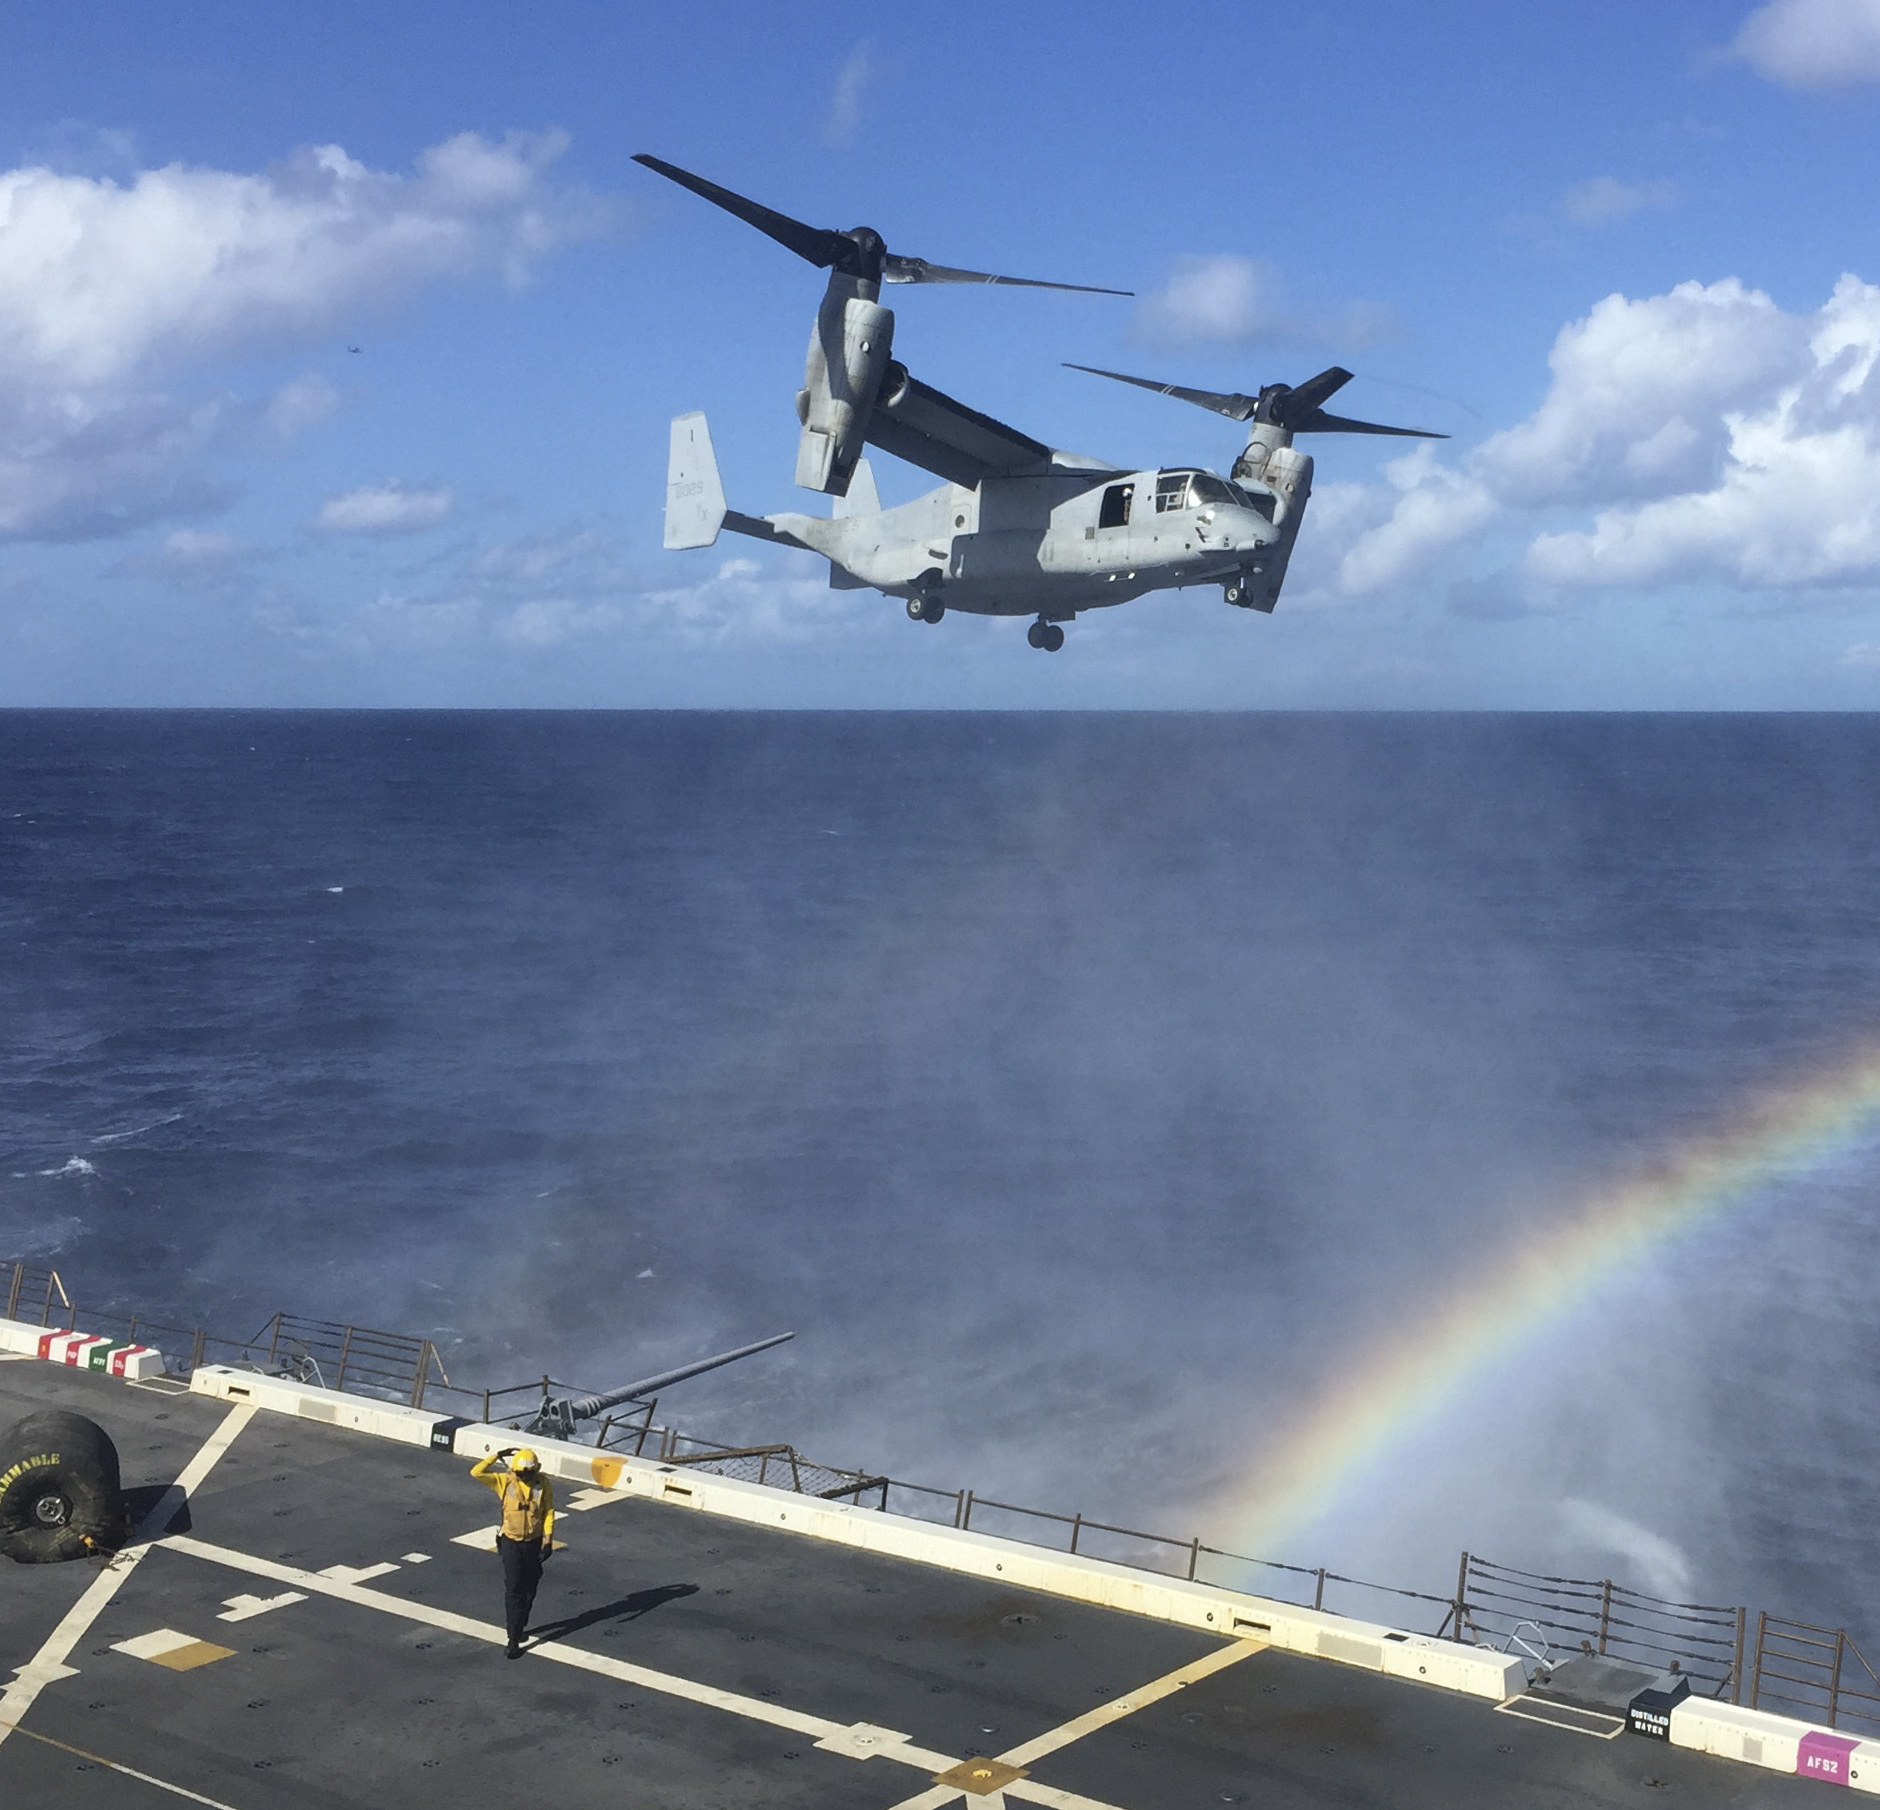 An MV-22 Osprey from Medium Tilt Rotor Squadron (VMM-166) amphibious transport dock ship USS New Orleans (LPD 18) off the coast of Southern California on Nov. 3, 2015. US Navy Photo